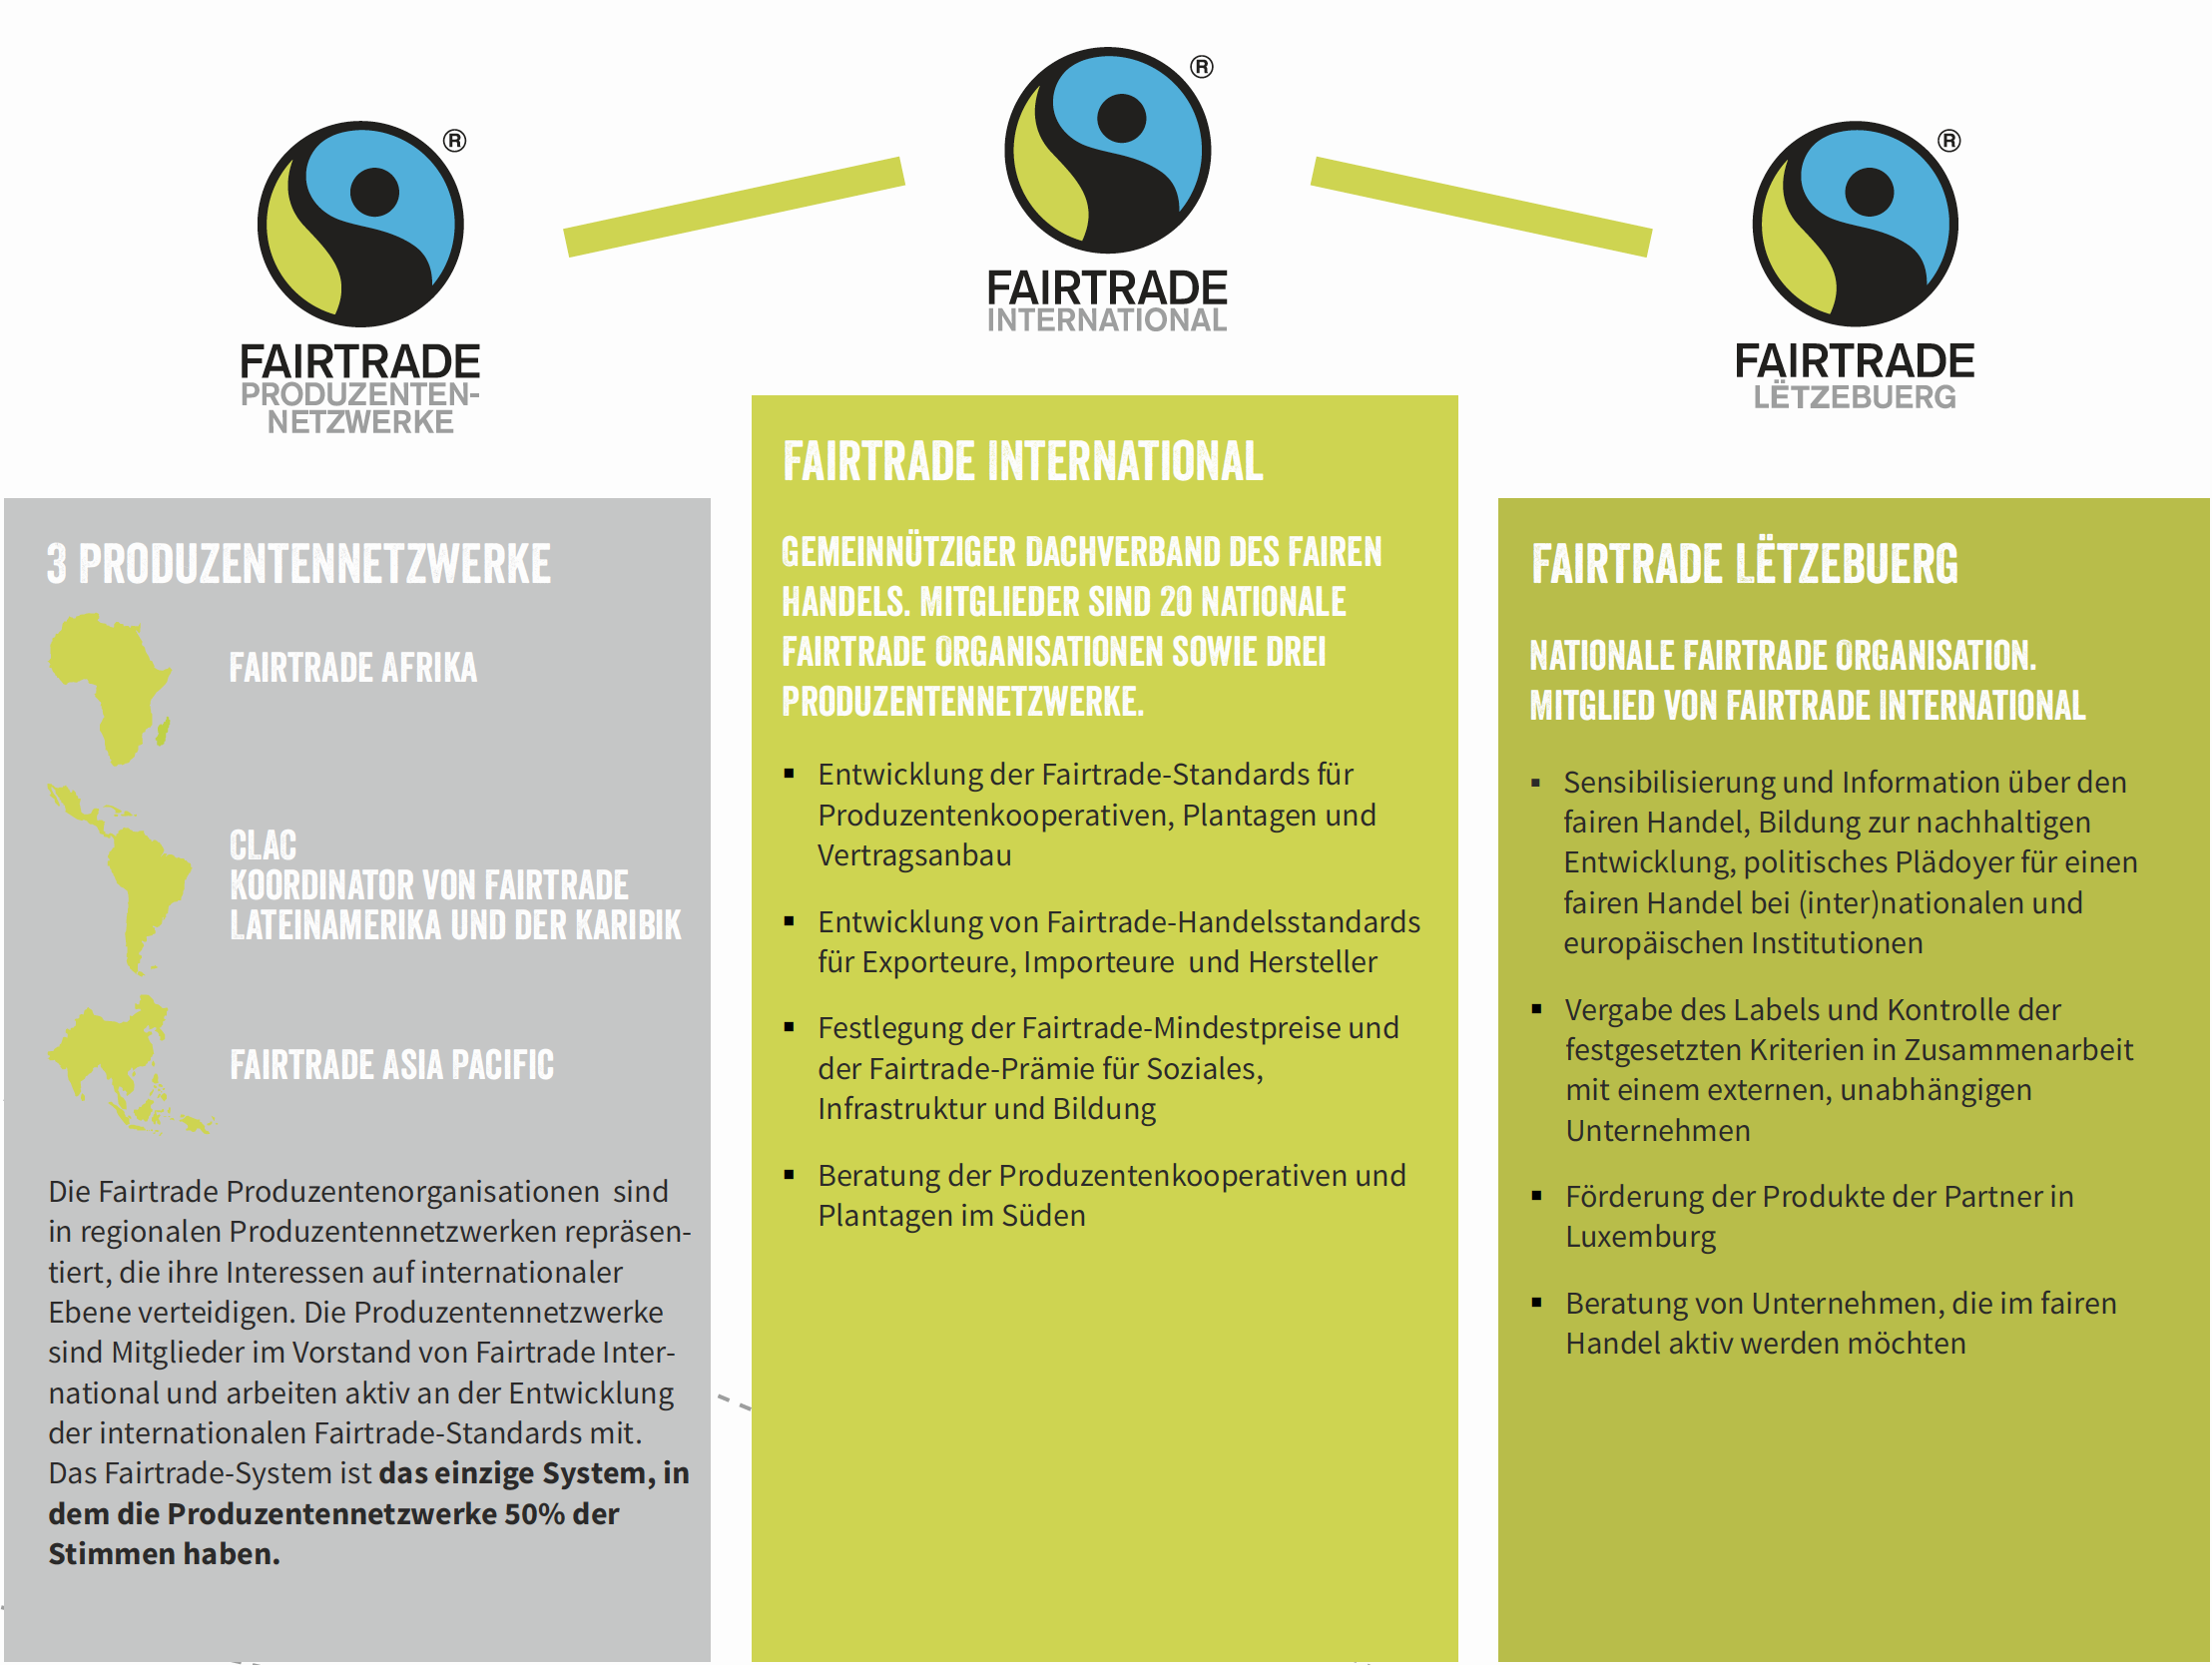 Das Fairtrade System